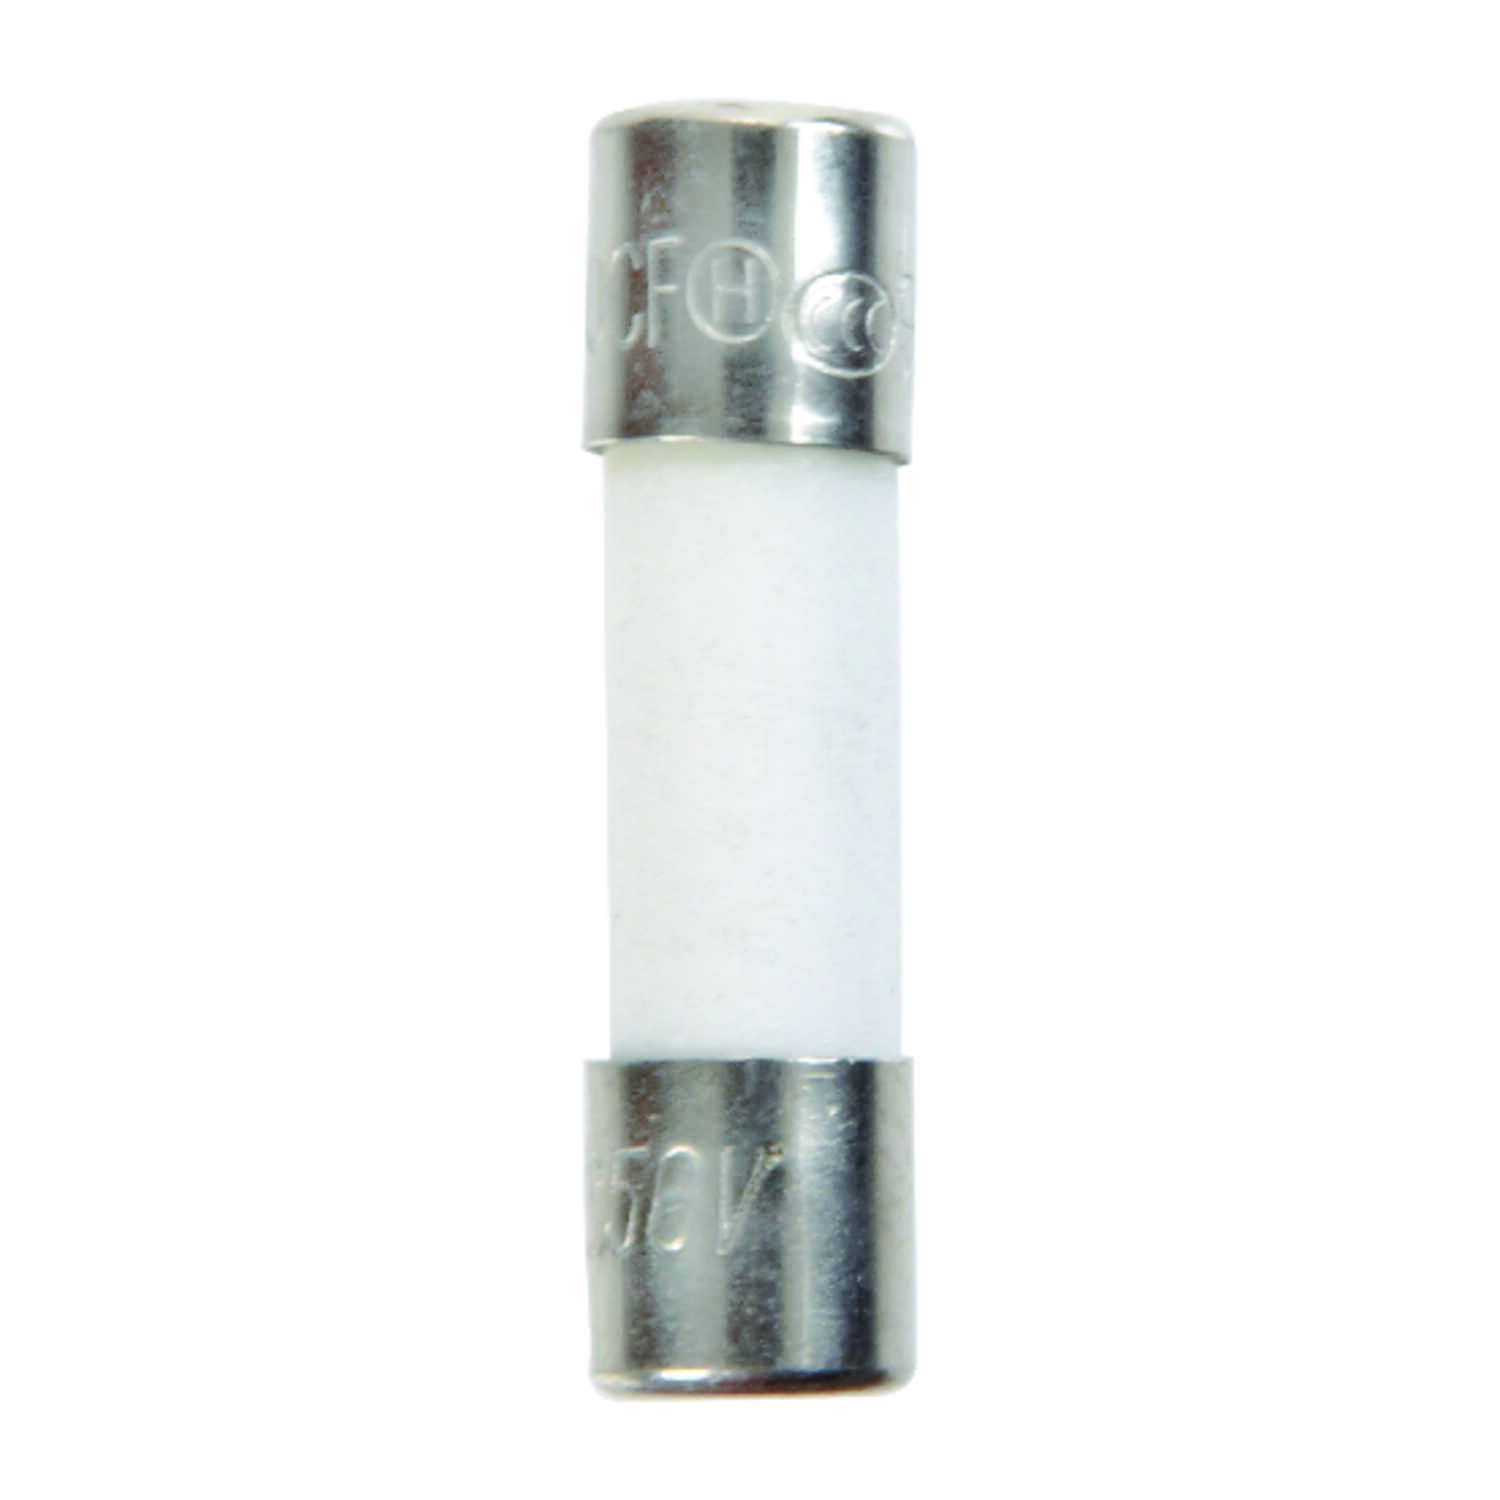 Jandorf  S501  2 amps 250 volts Ceramic  Fast Acting Fuse  2 pk